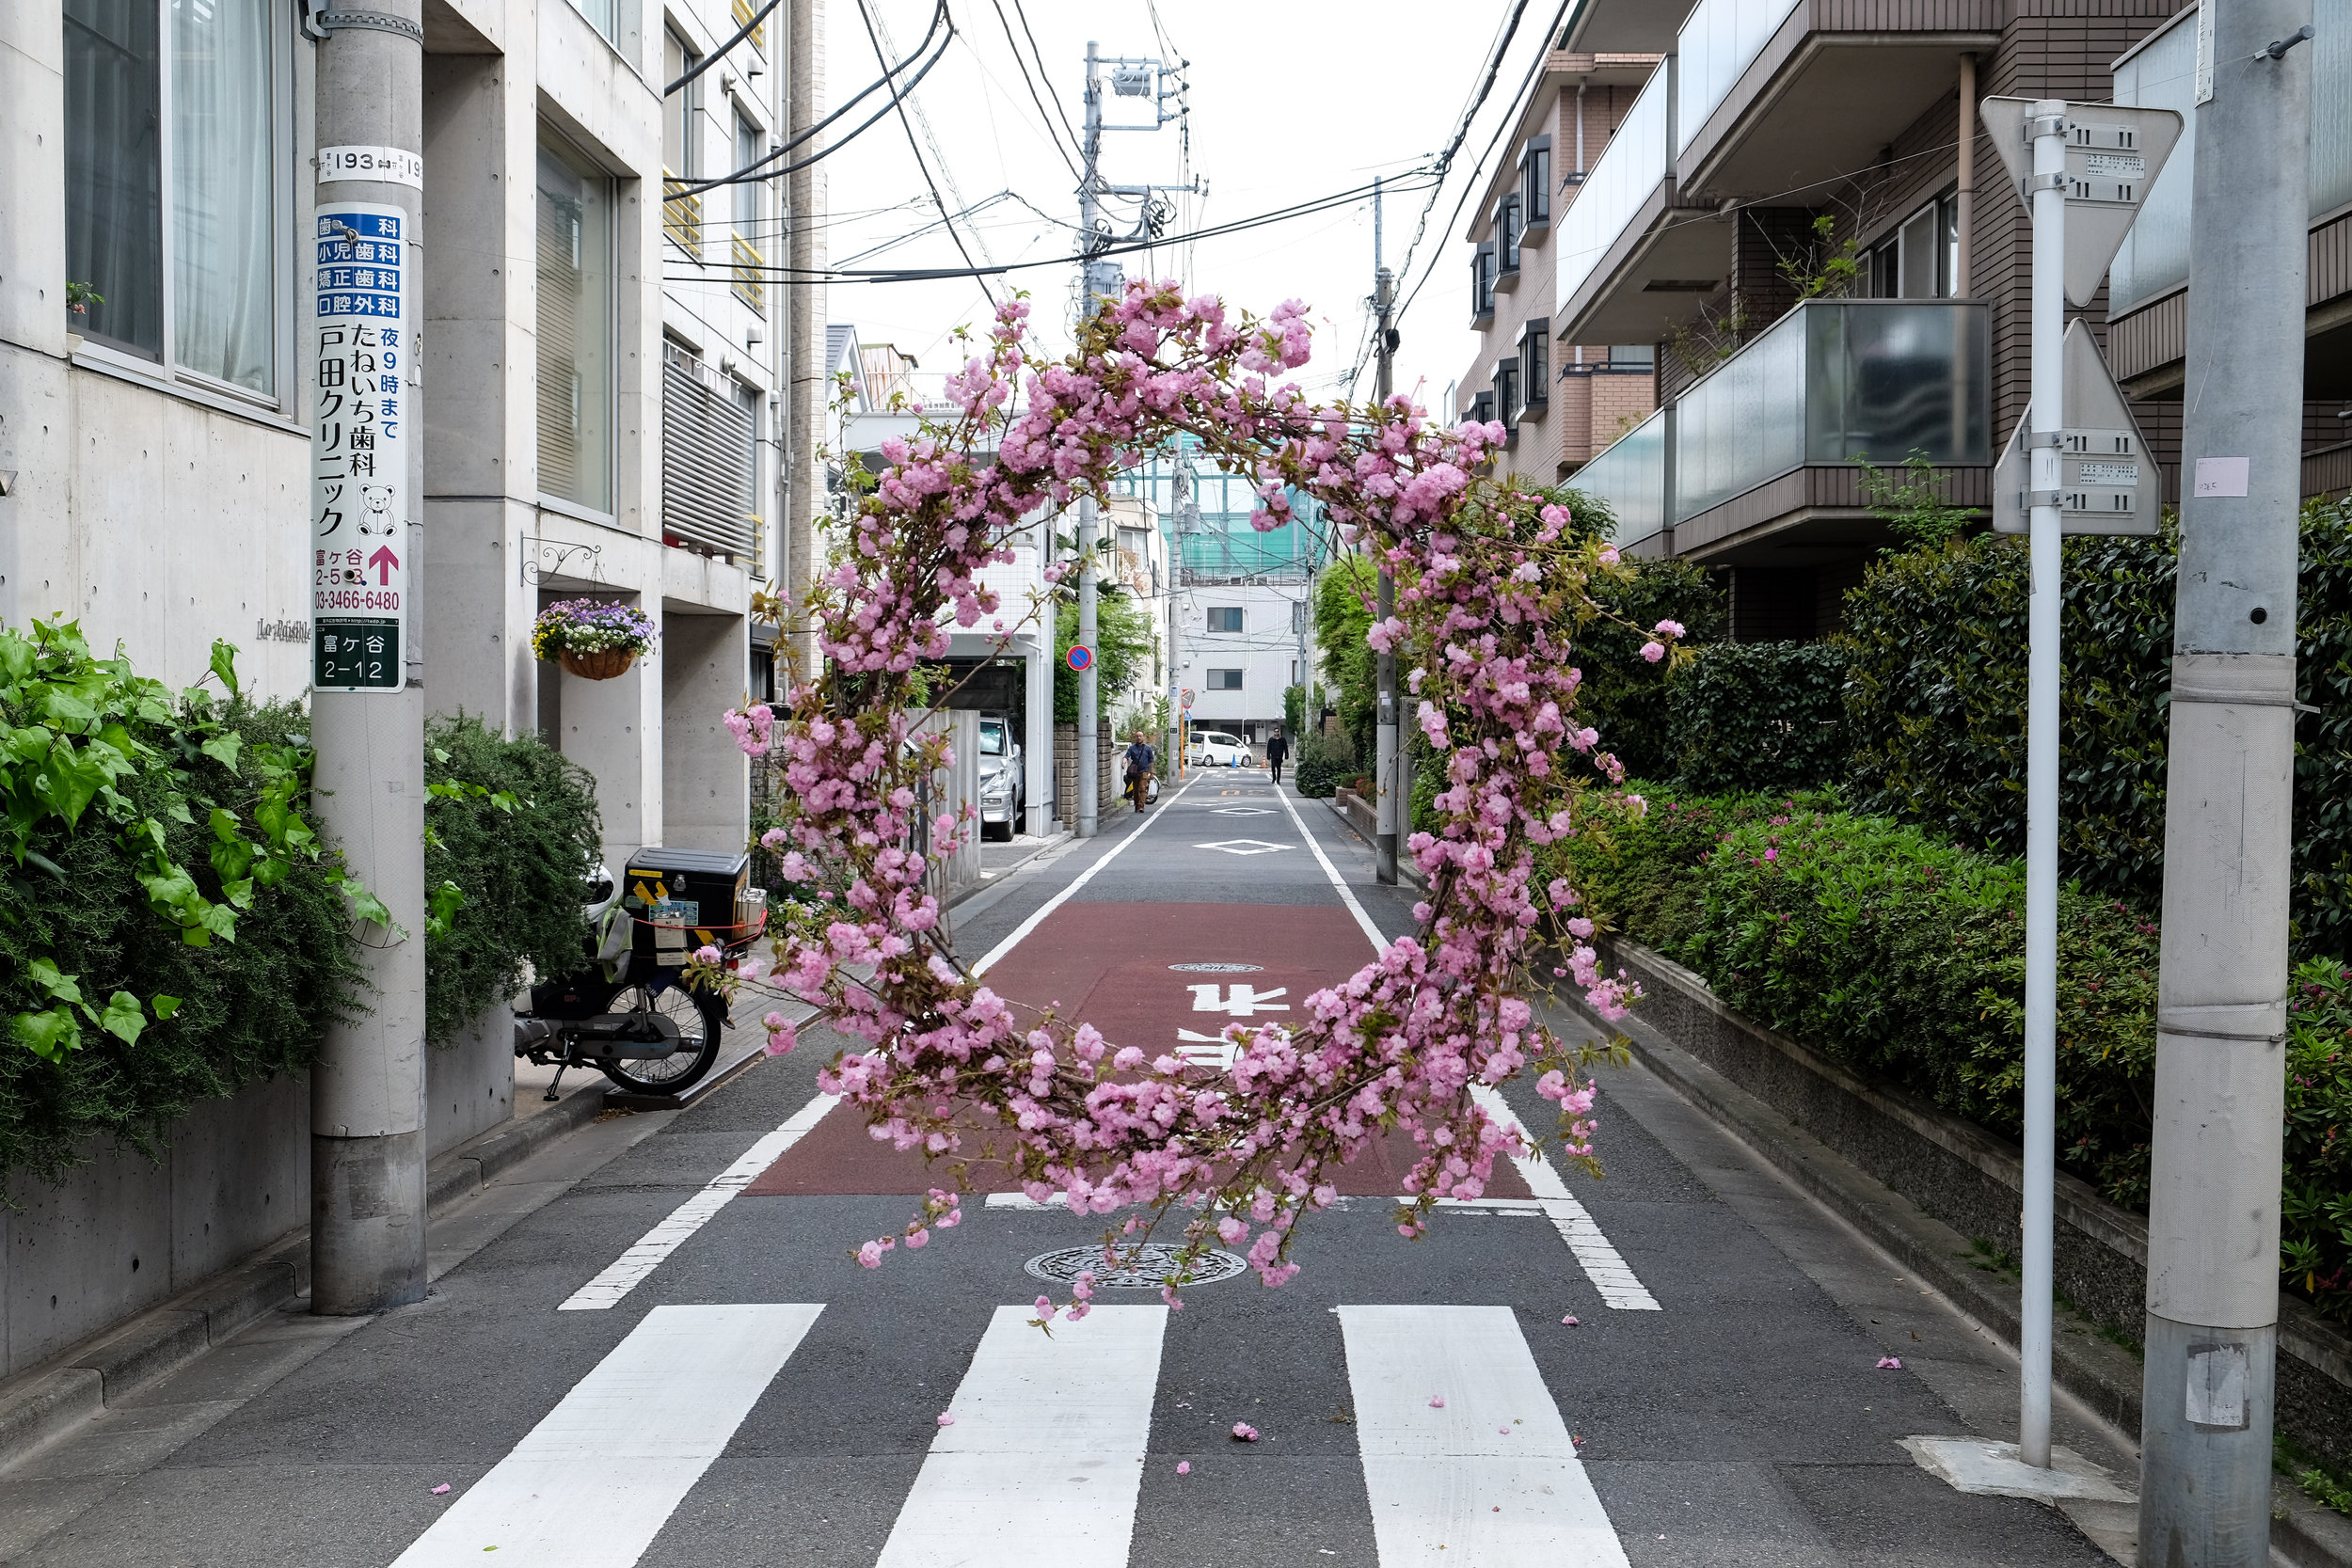 Loose Leaf_Hover Wreath_Cherry Blossom_Tokyo_2018_01.jpg